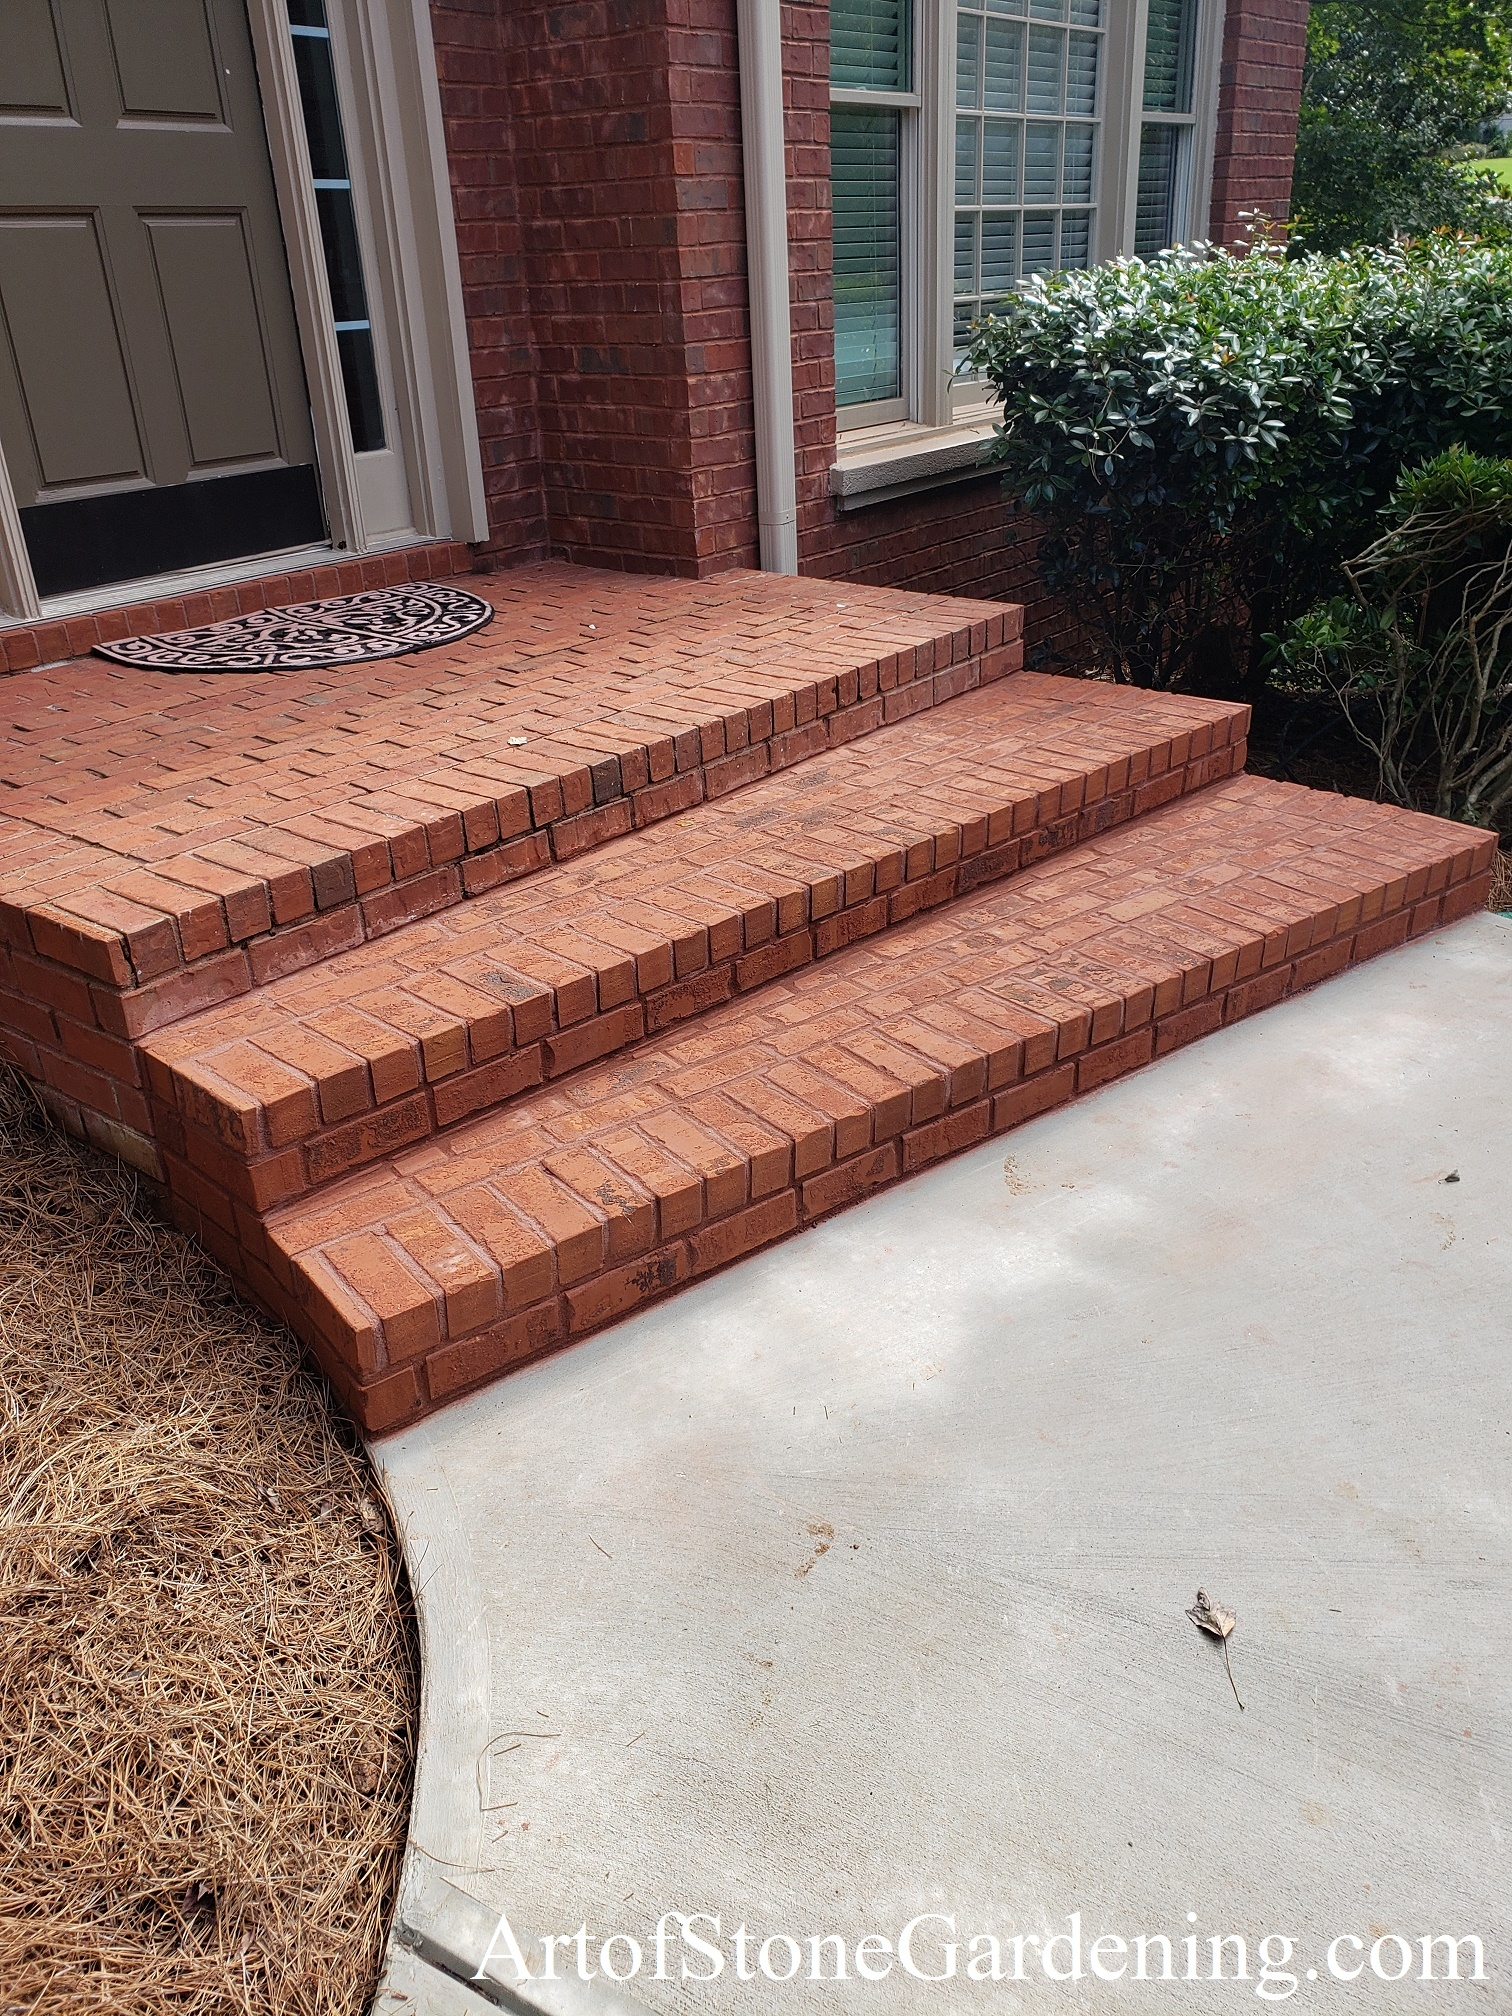 Newly replaced brick steps and front stoop